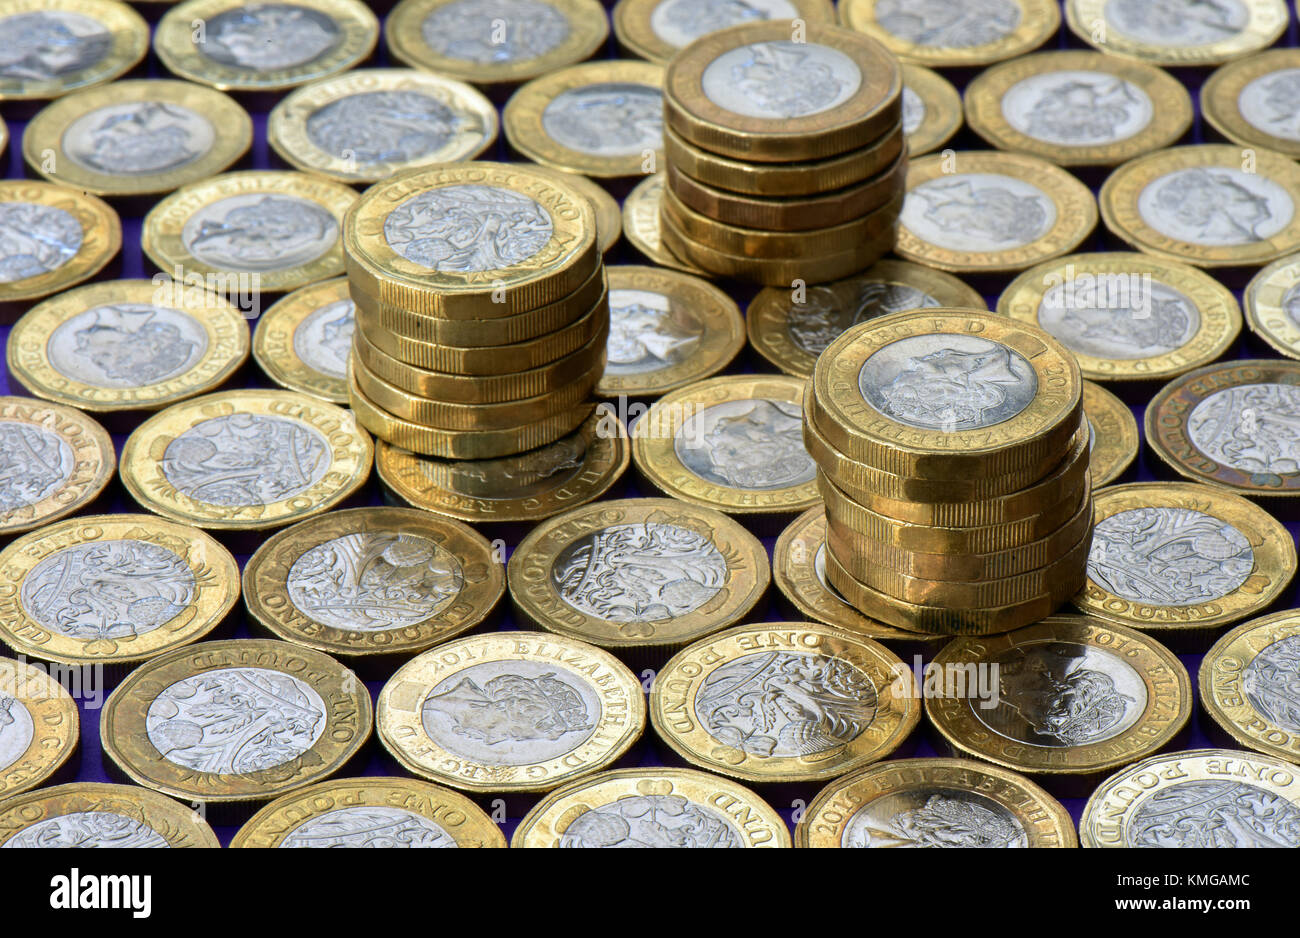 A great number or lot of new one pound coins covering a